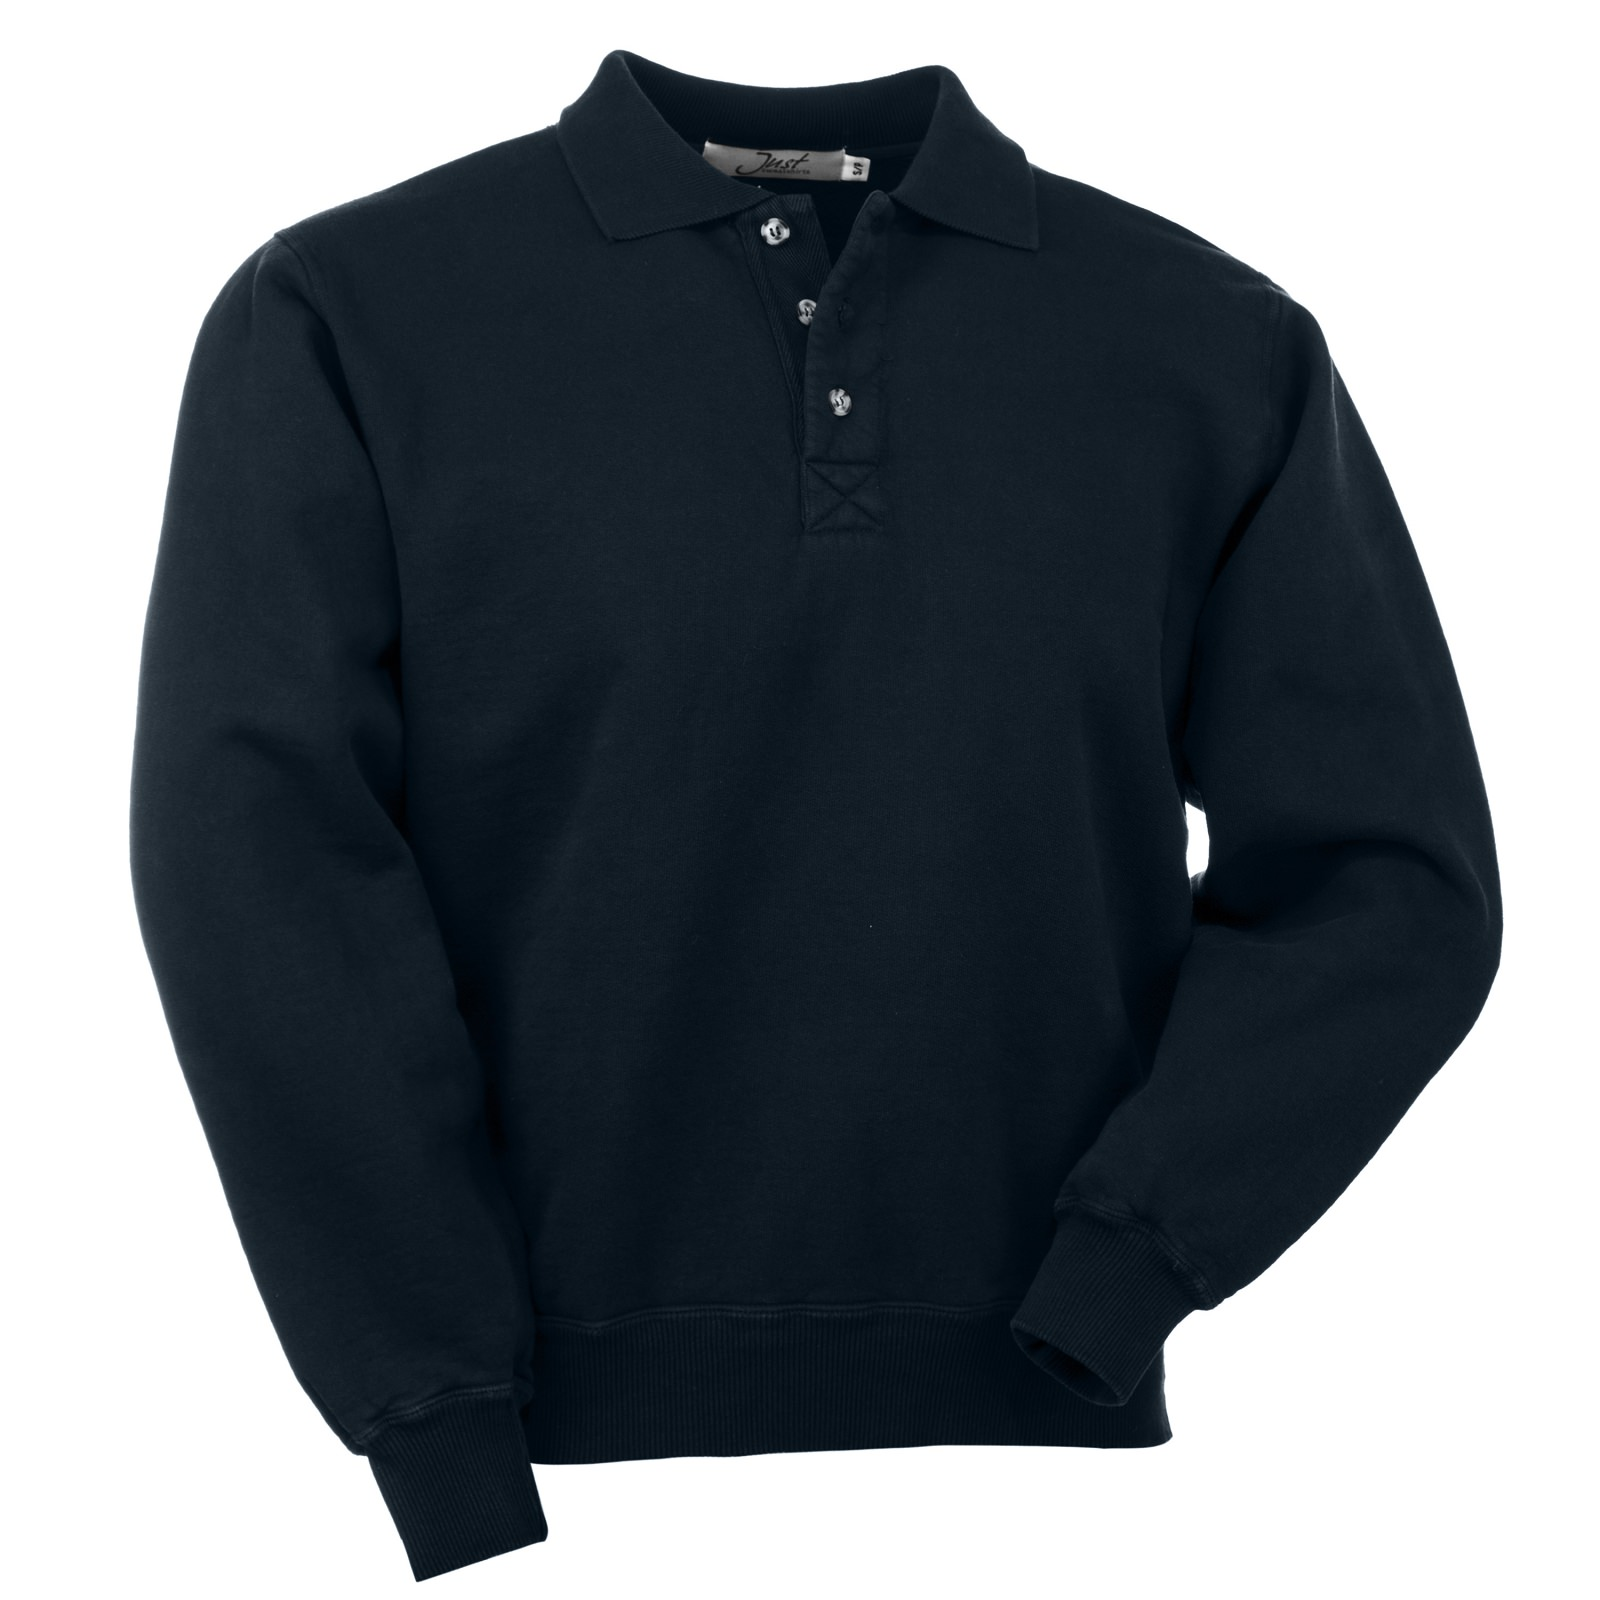 3 Button Polo Dark Navy 100% Cotton